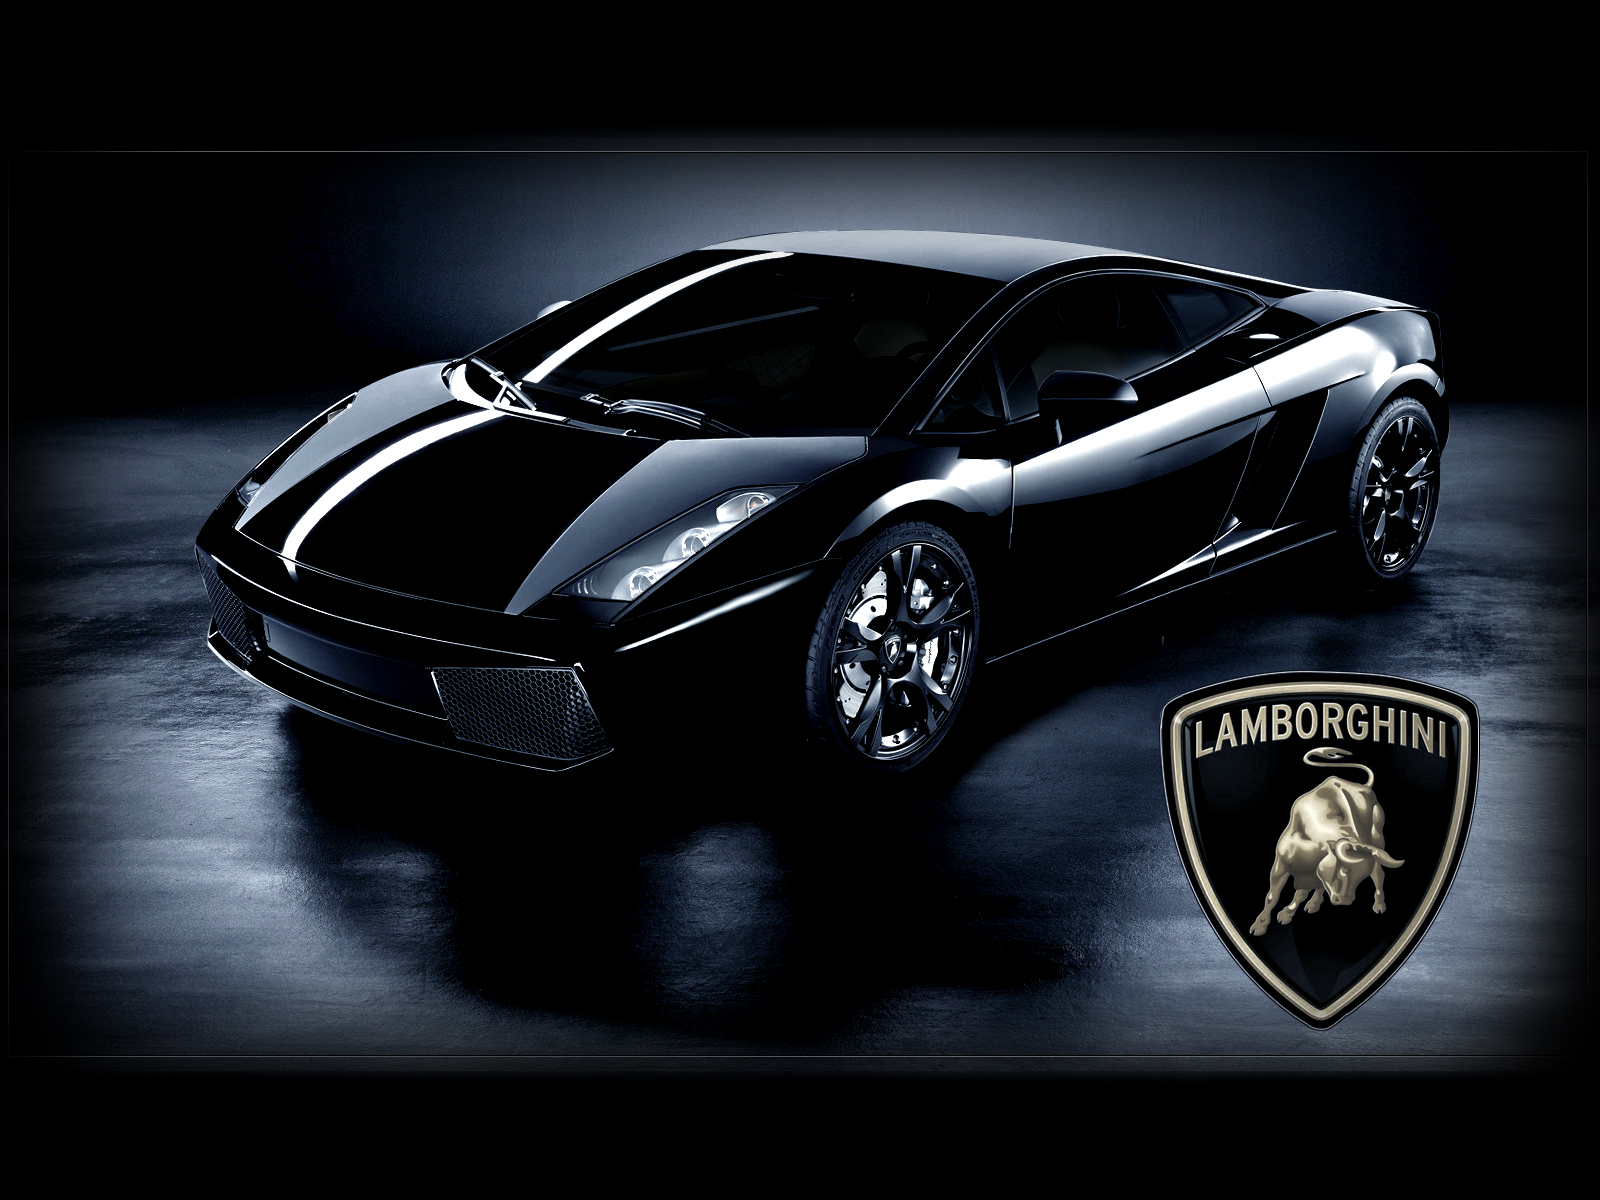 Lamborghini Gallardo Black HD Desktop Wallpaper Widescreen 1600x1200